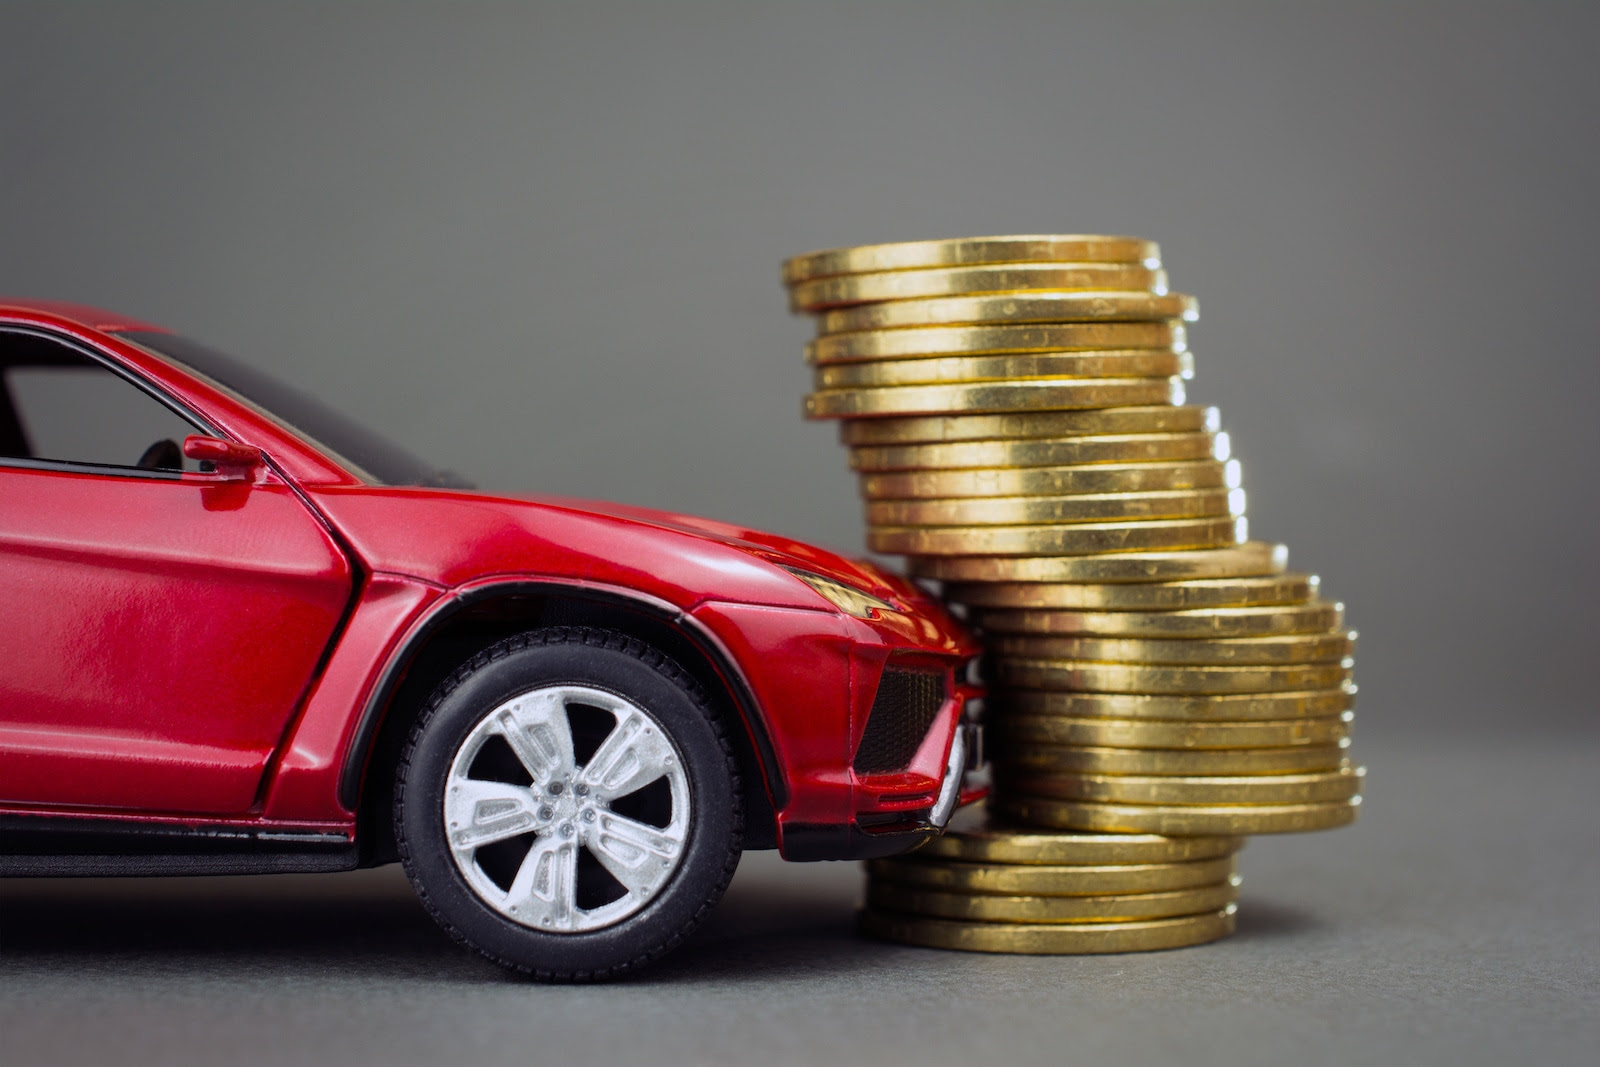 Cheap Car Insurance, No Deposit: Get Low-Cost Full Coverage with No Down Payment (2021)